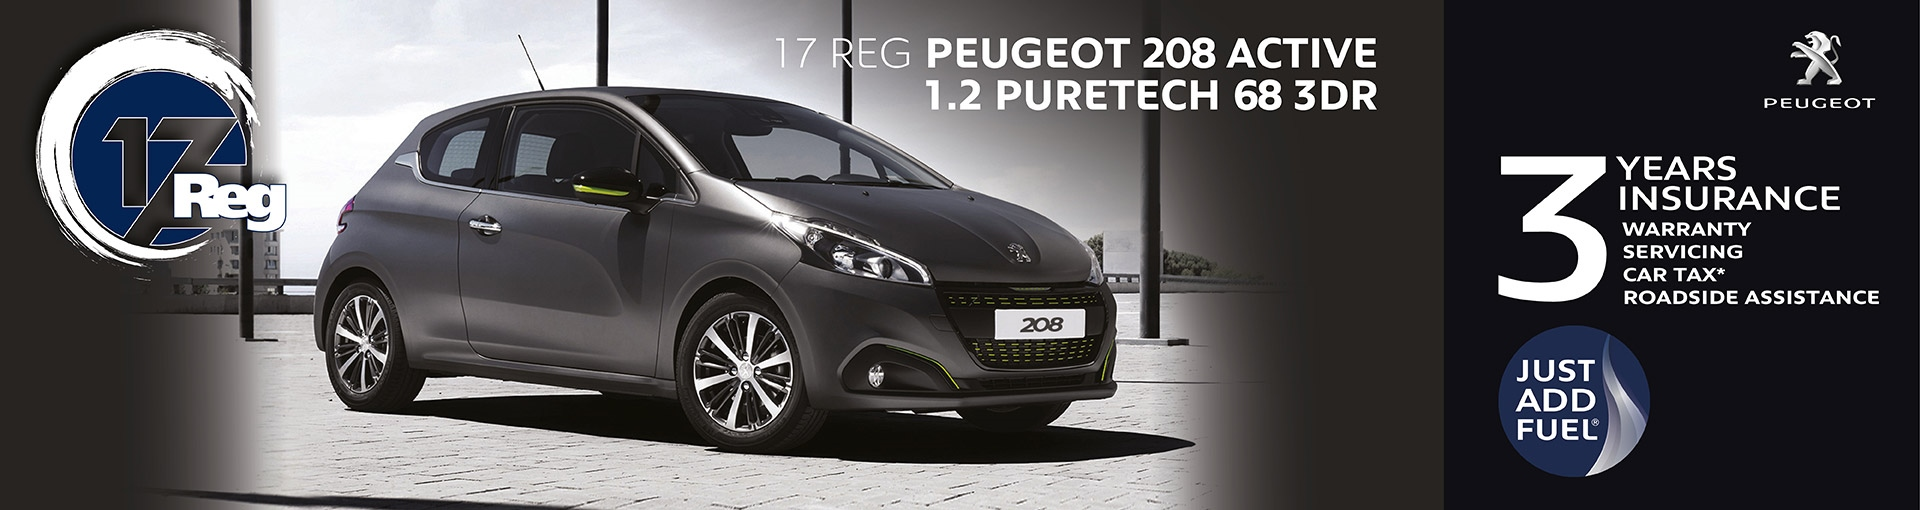 Peugeot 208 Just Add Fuel from 18 years old